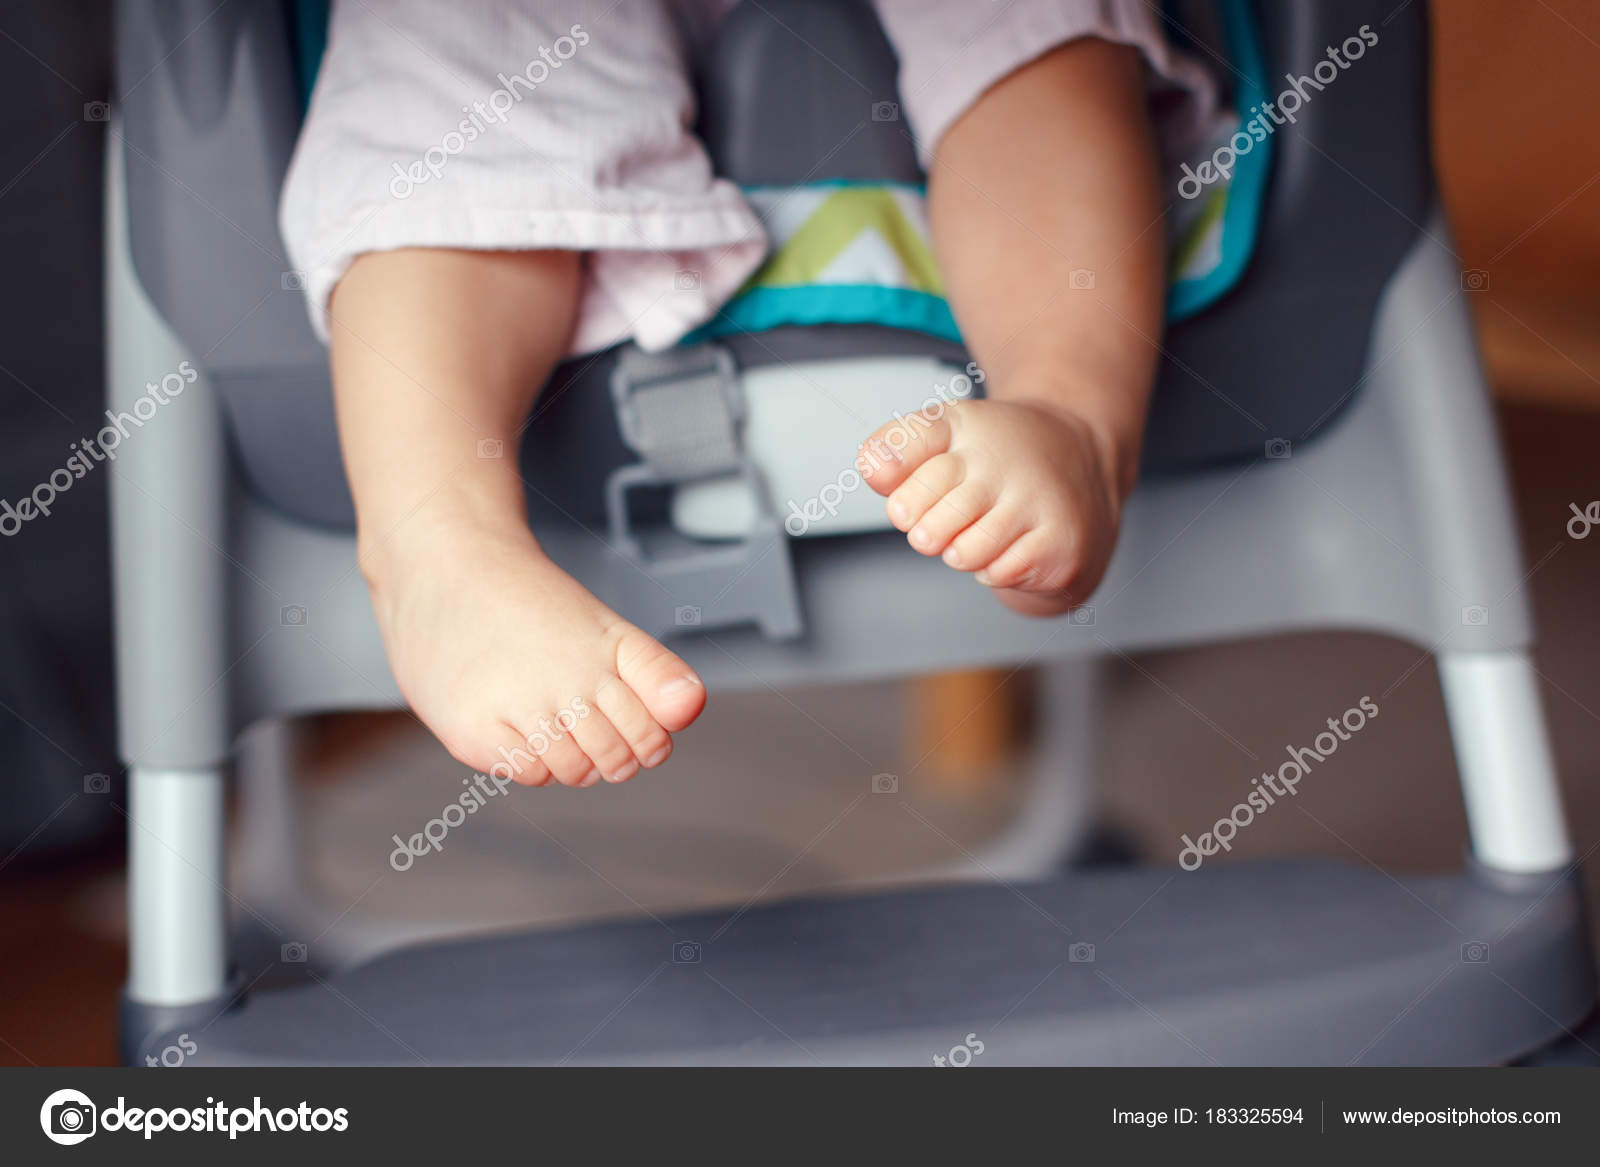 Fantastic Closeup Adorable Chubby Baby Legs Feet Small Kid Sitting Caraccident5 Cool Chair Designs And Ideas Caraccident5Info